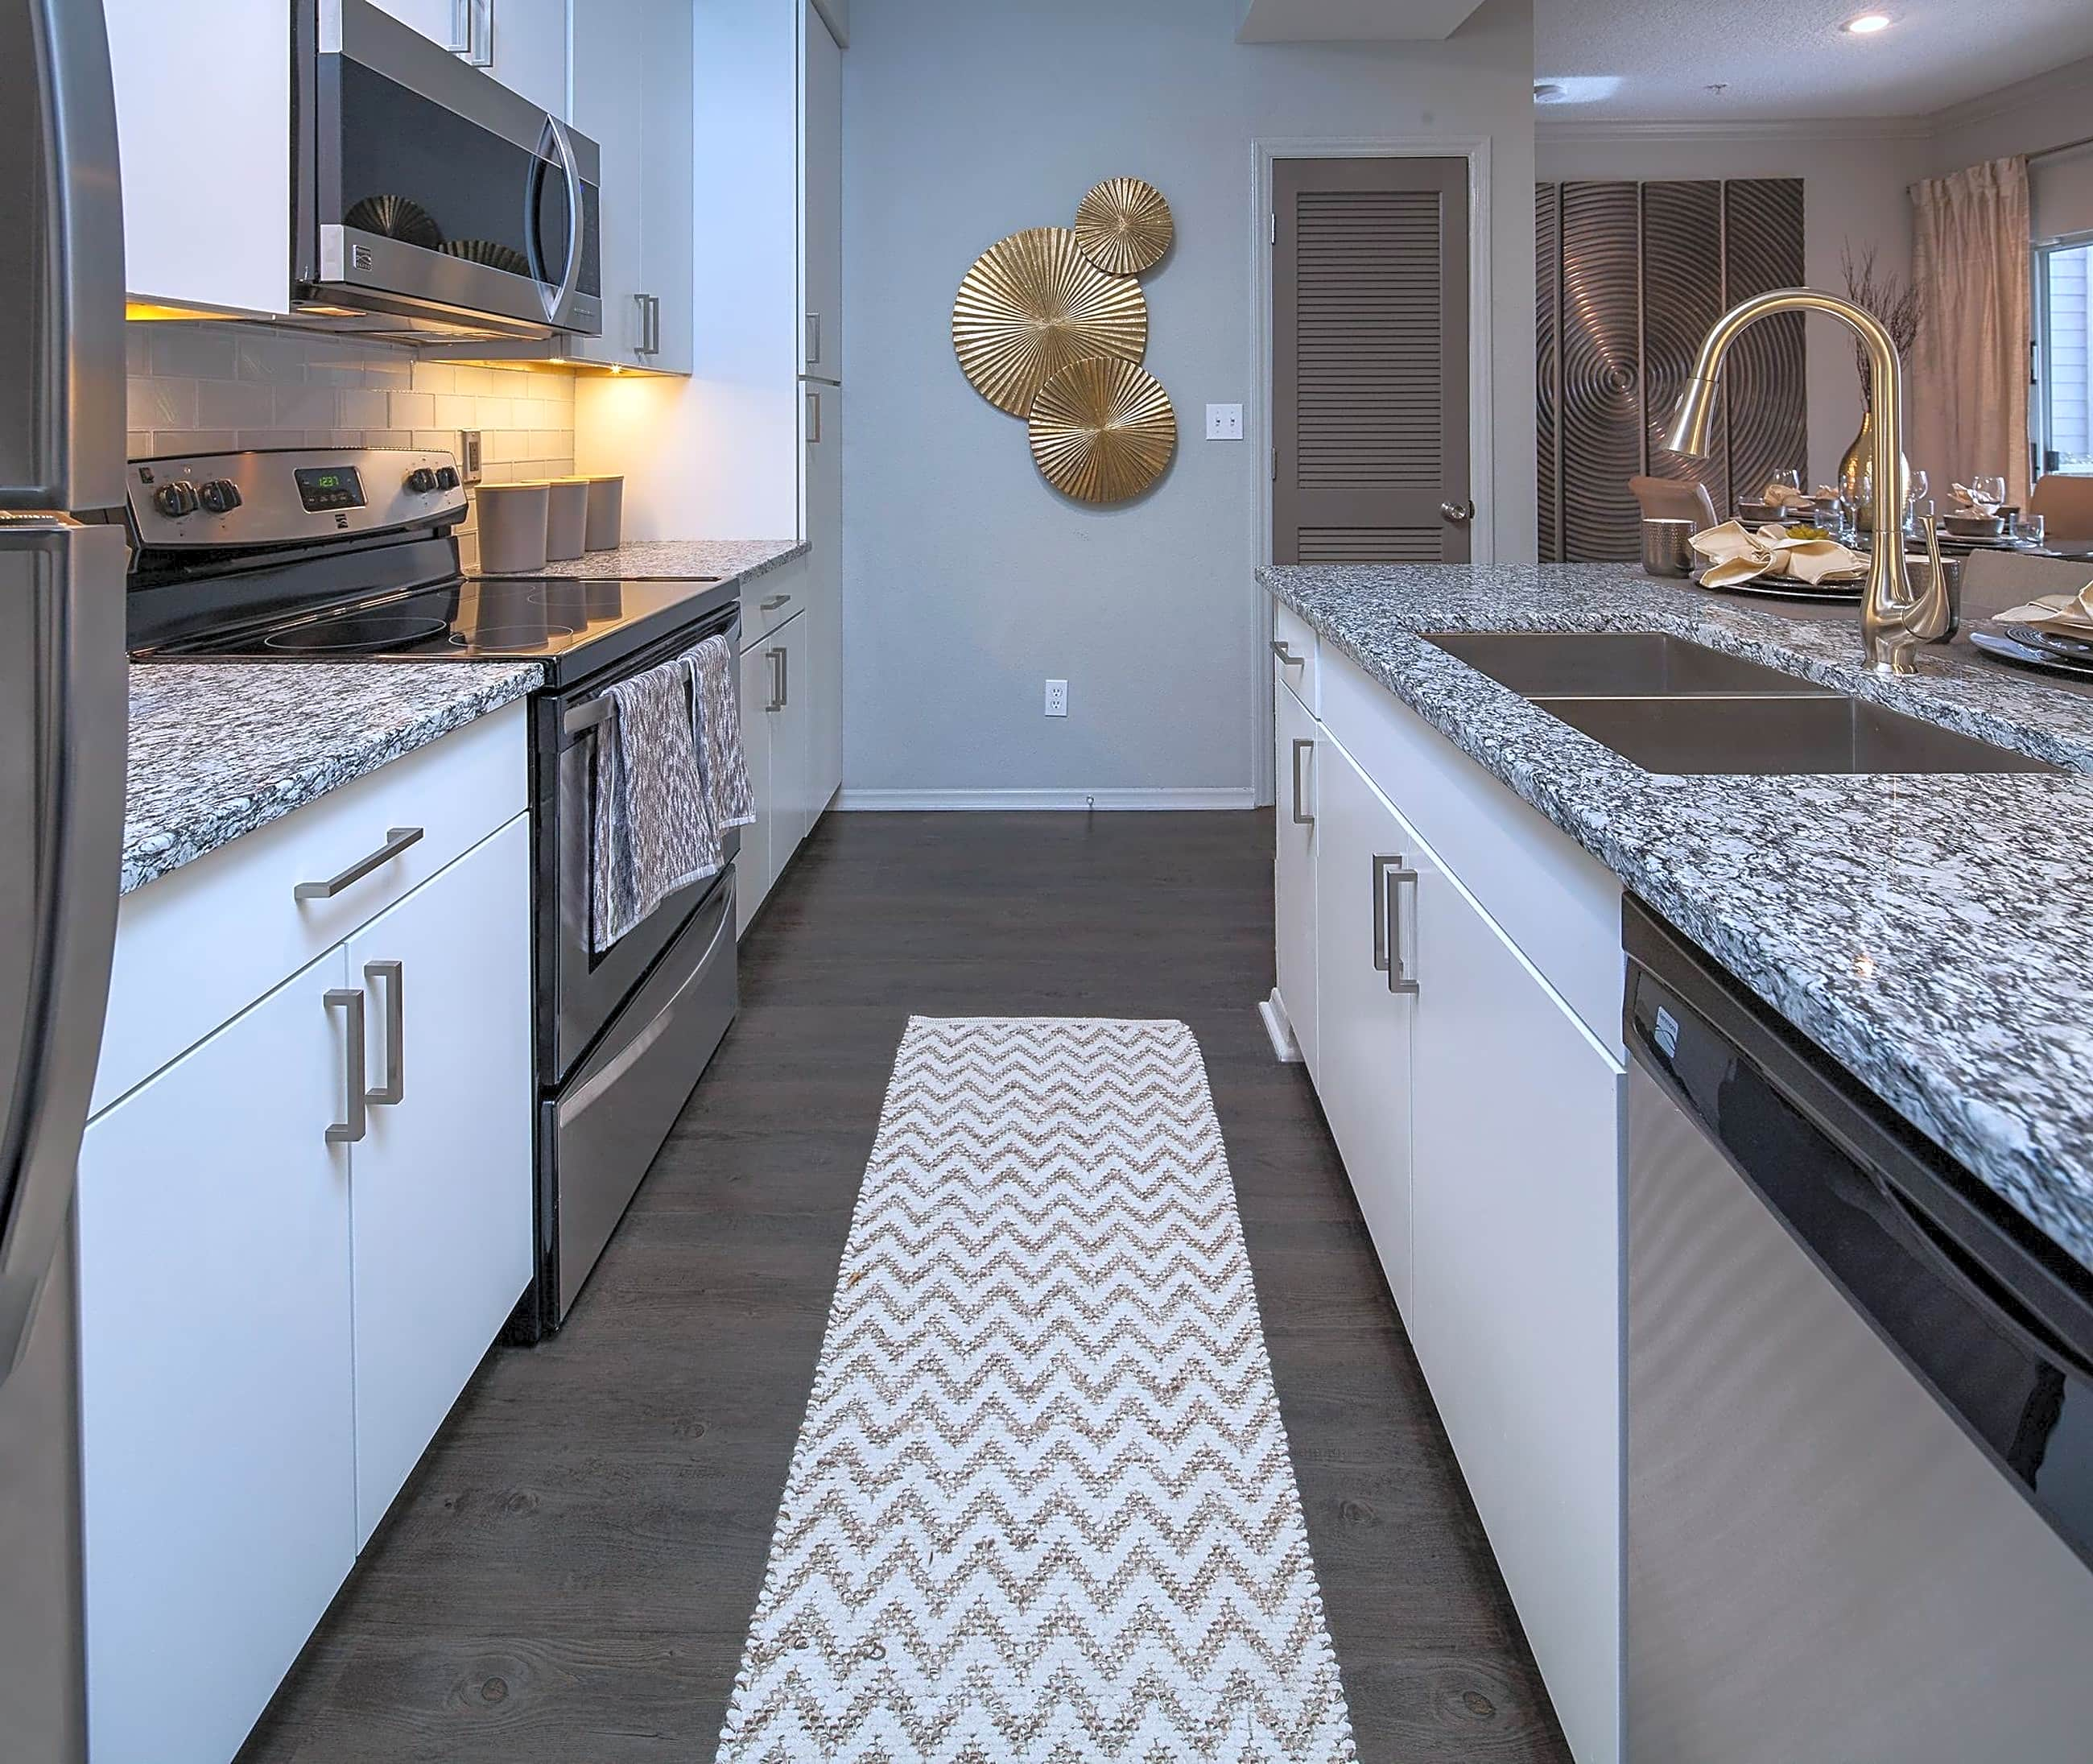 Southpoint Apartments: The Hamptons At Research Triangle Park By Cortland